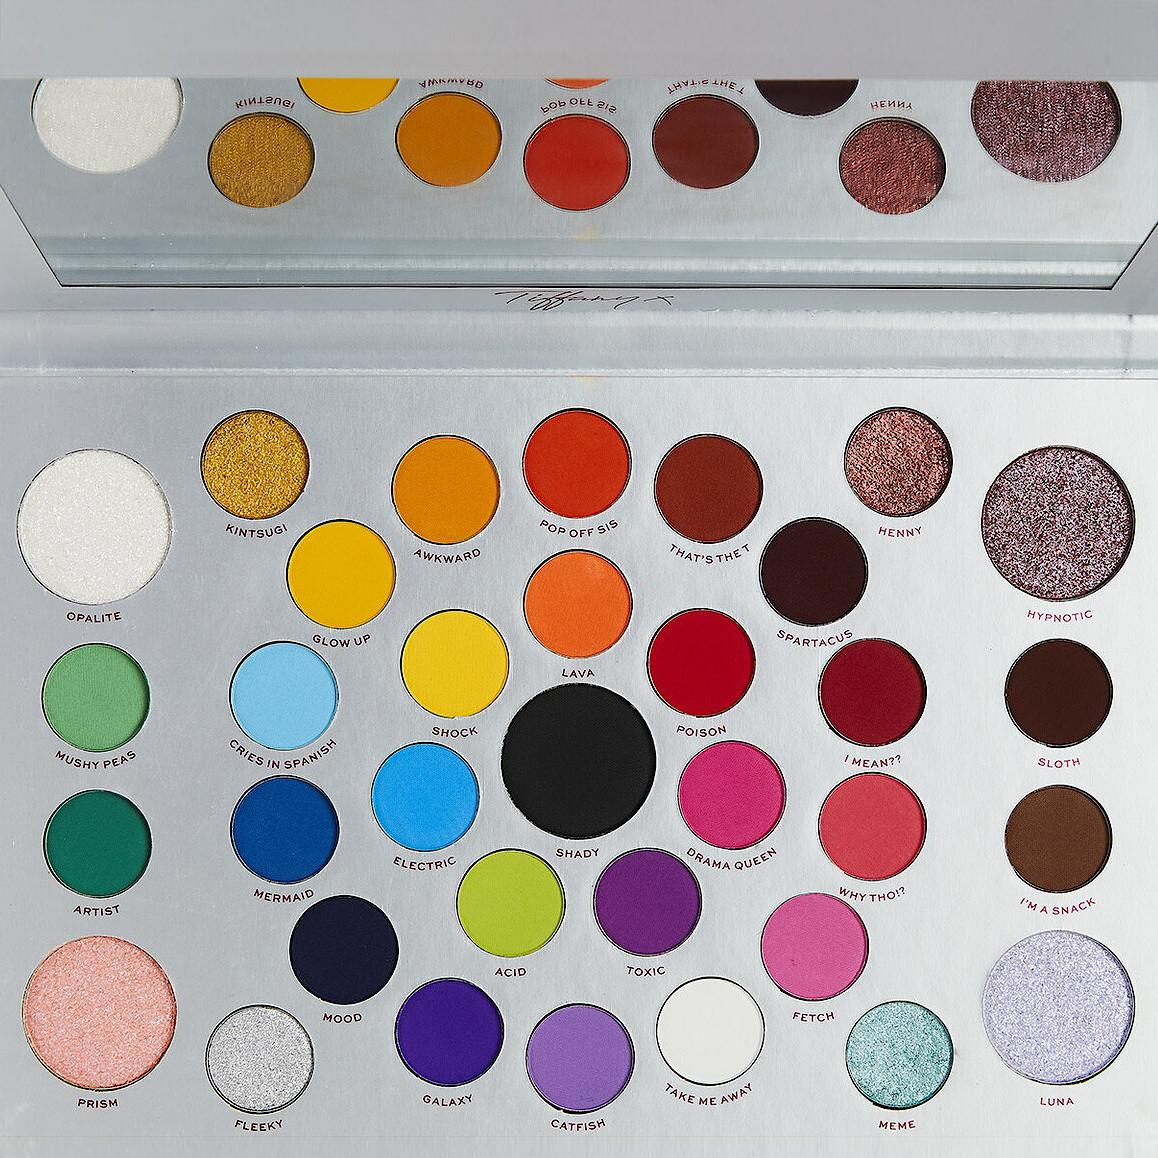 Makeup Obsession X Tiffany Illumin arty Kaleidoscopic Dreams Eyeshadow Palette Open Front Closer